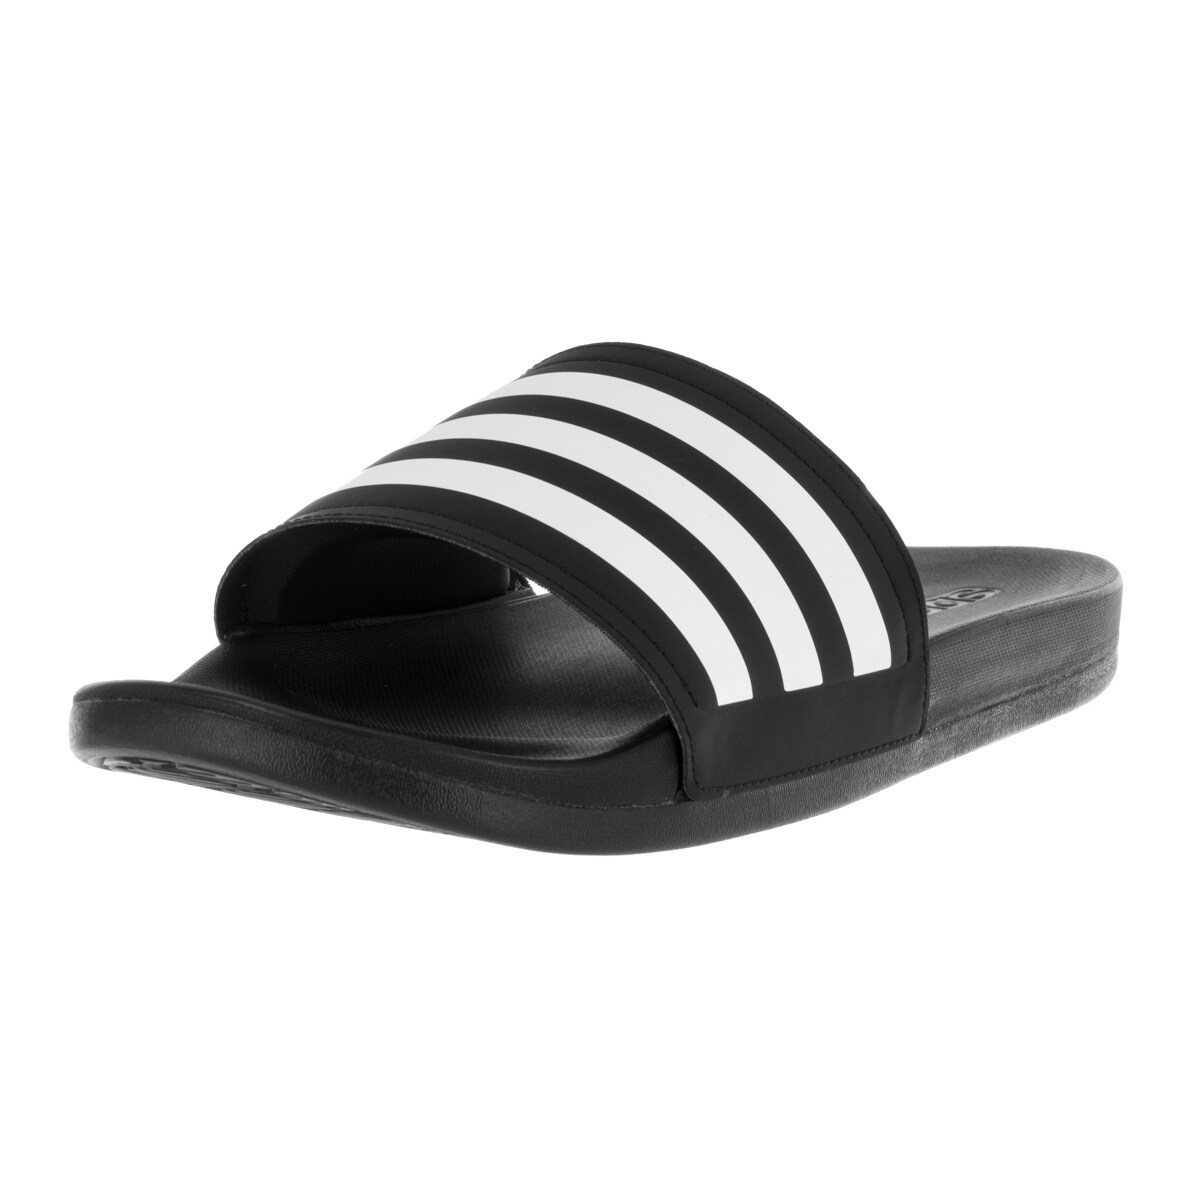 909273a306d3 Shop Adidas Men s Adilette CF Ultra C Black Sandal - Free Shipping On  Orders Over  45 - Overstock - 13404656